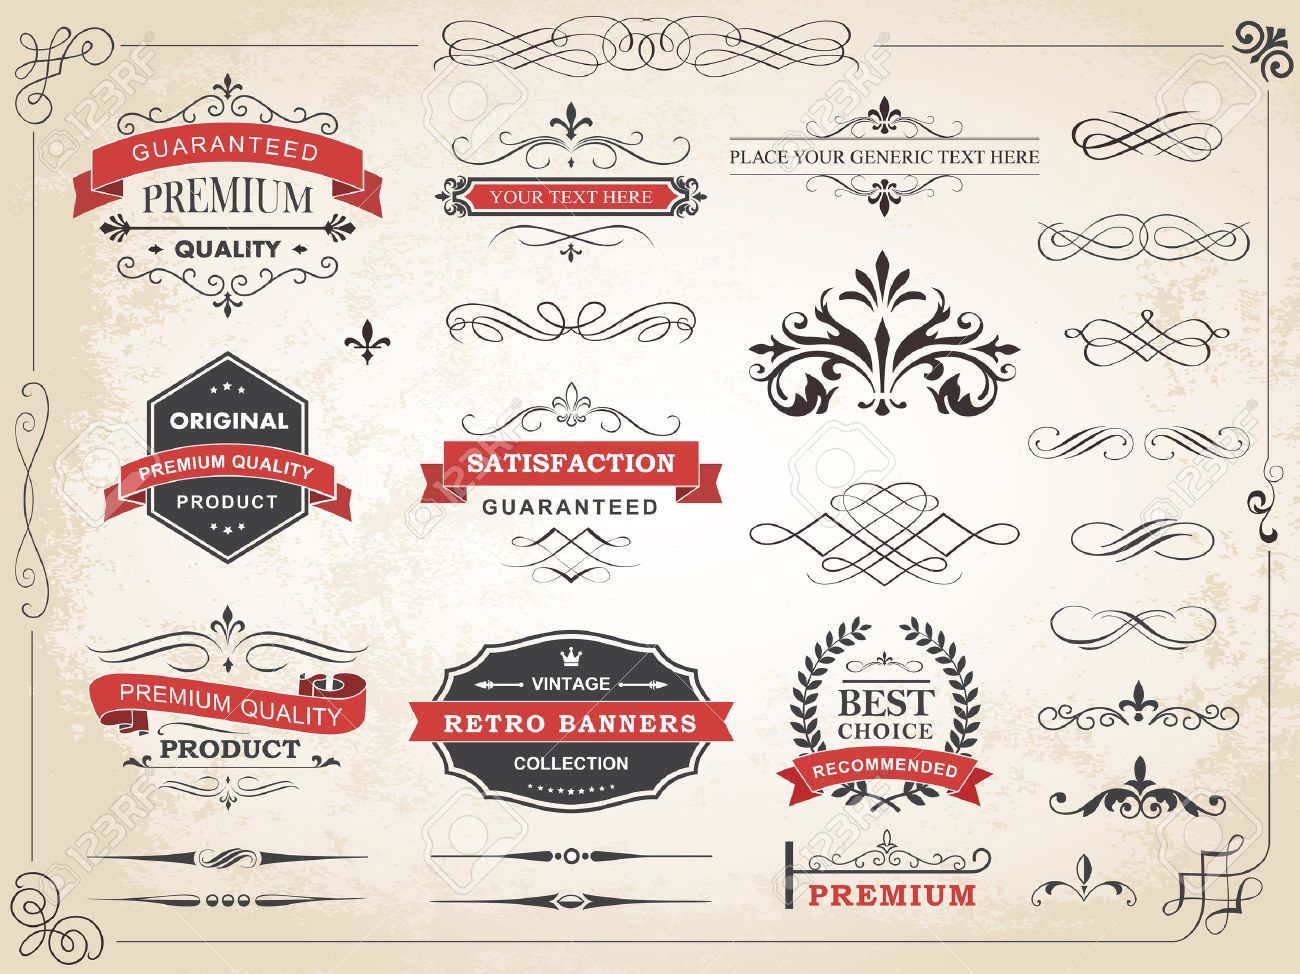 Vector illustration of calligraphic vintage label ornament divider vector design elements and page decoration Stock Vector - 46736026